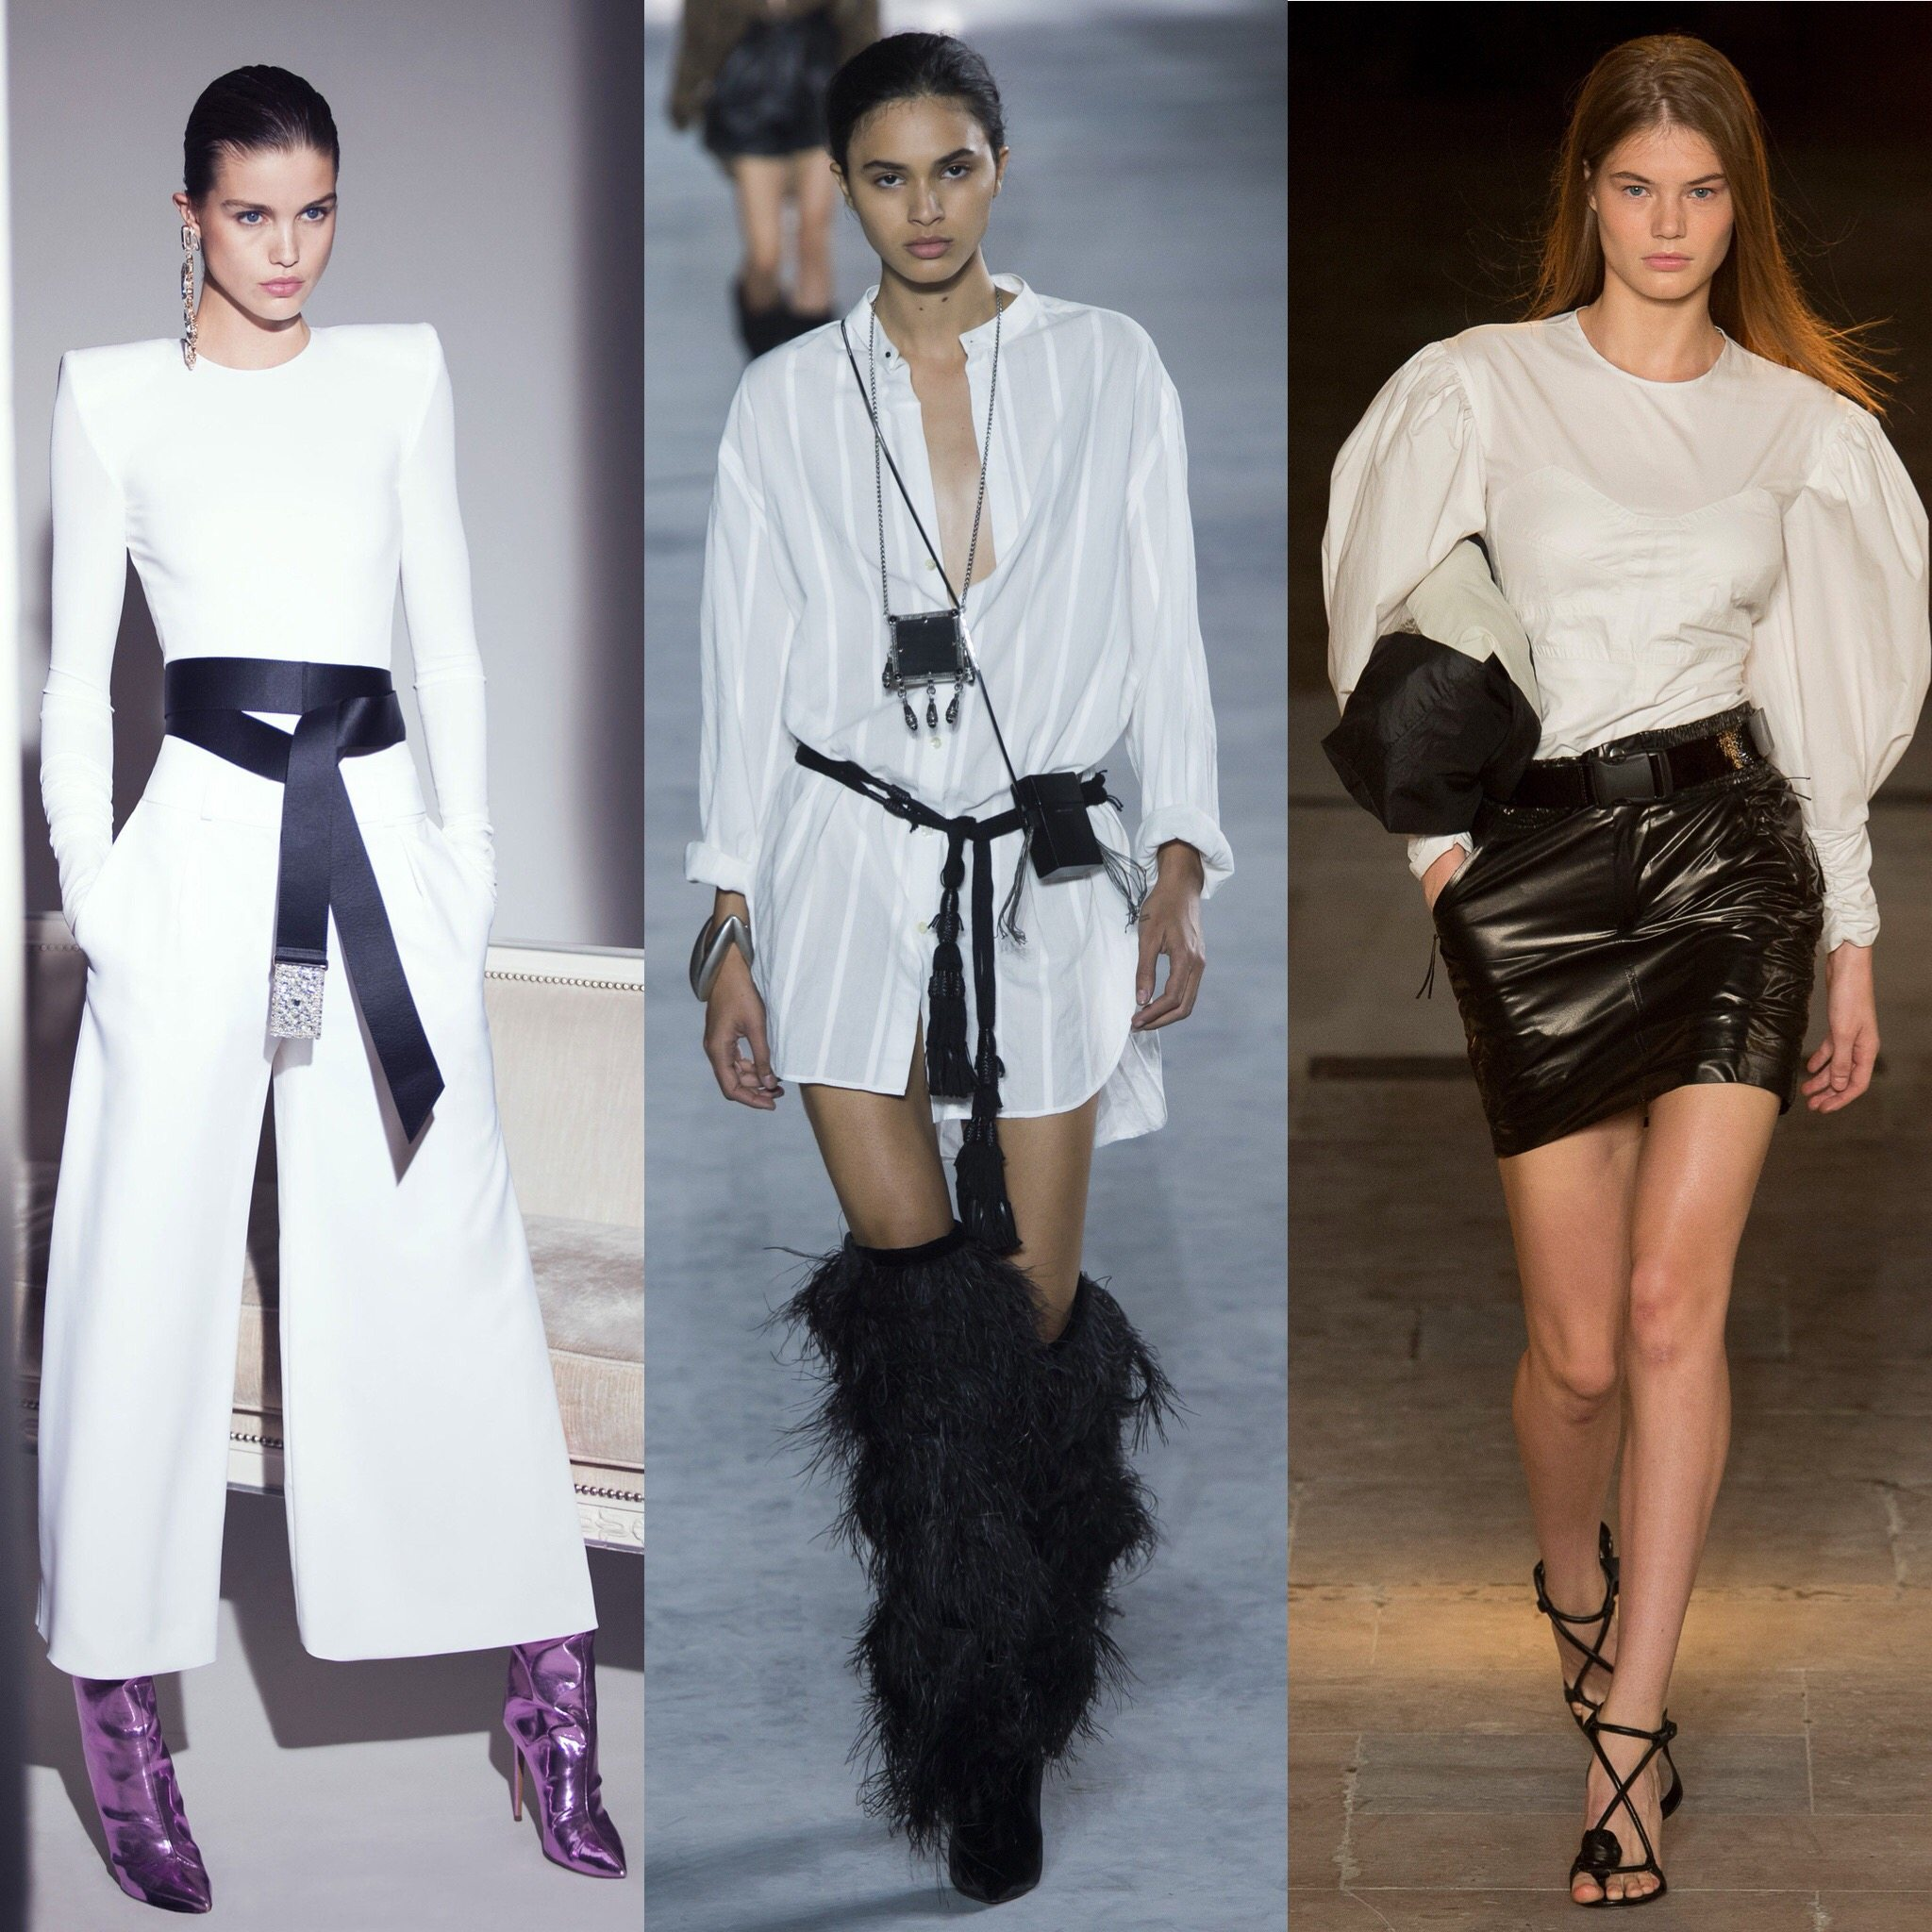 Spring 2018 Trends: Fashion Week coverage - Black and White - Alexandre Vauthier - Saint Laurent - Isabel Marant. More on Houseofcomil.com. Pictures from Vogue